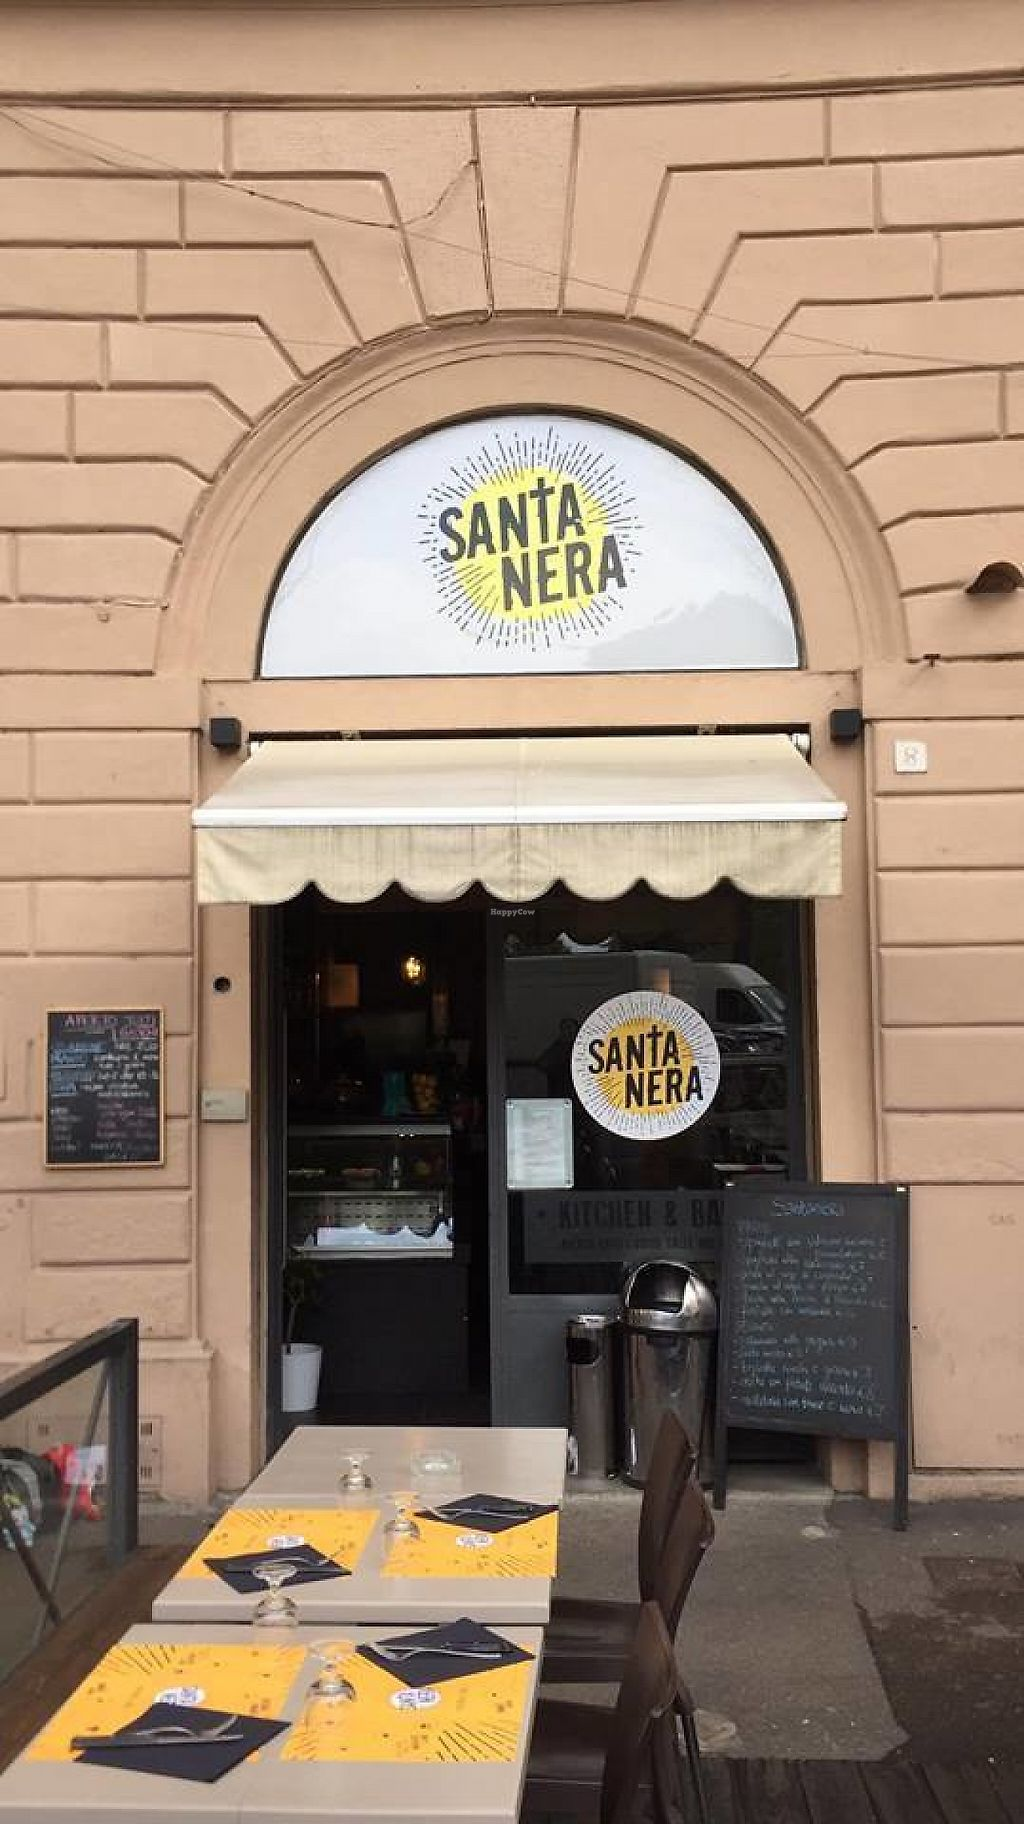 """Photo of Santanera Kitchen & Bar  by <a href=""""/members/profile/community5"""">community5</a> <br/>Santanera Kitchen & Bar <br/> June 2, 2017  - <a href='/contact/abuse/image/93235/265157'>Report</a>"""